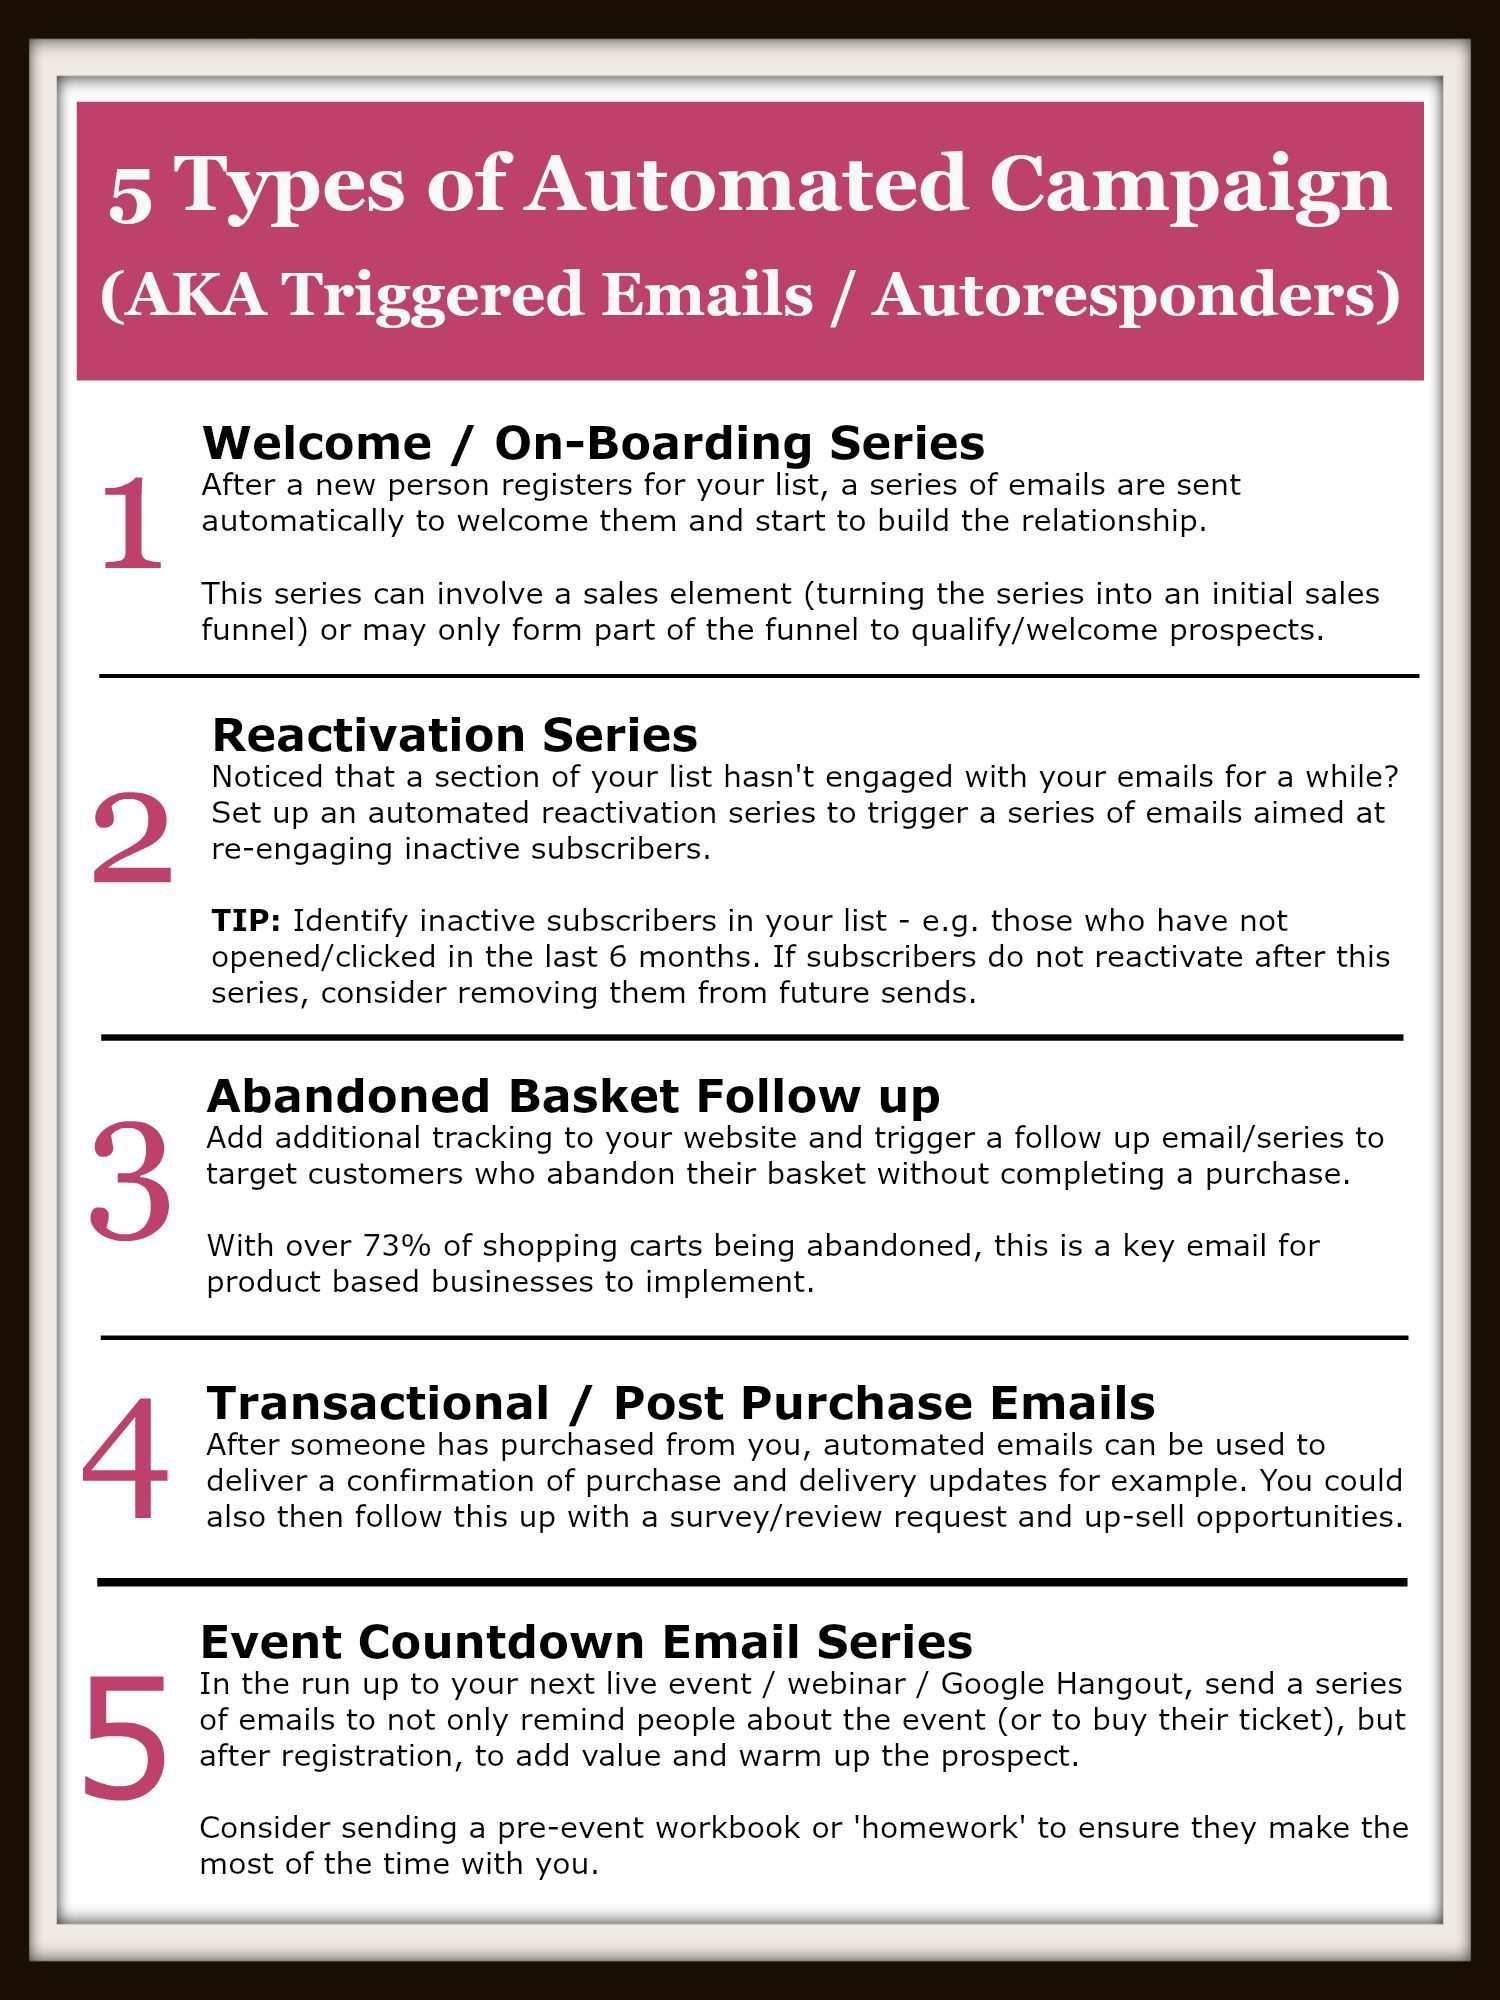 5 types of Automated Campaigns